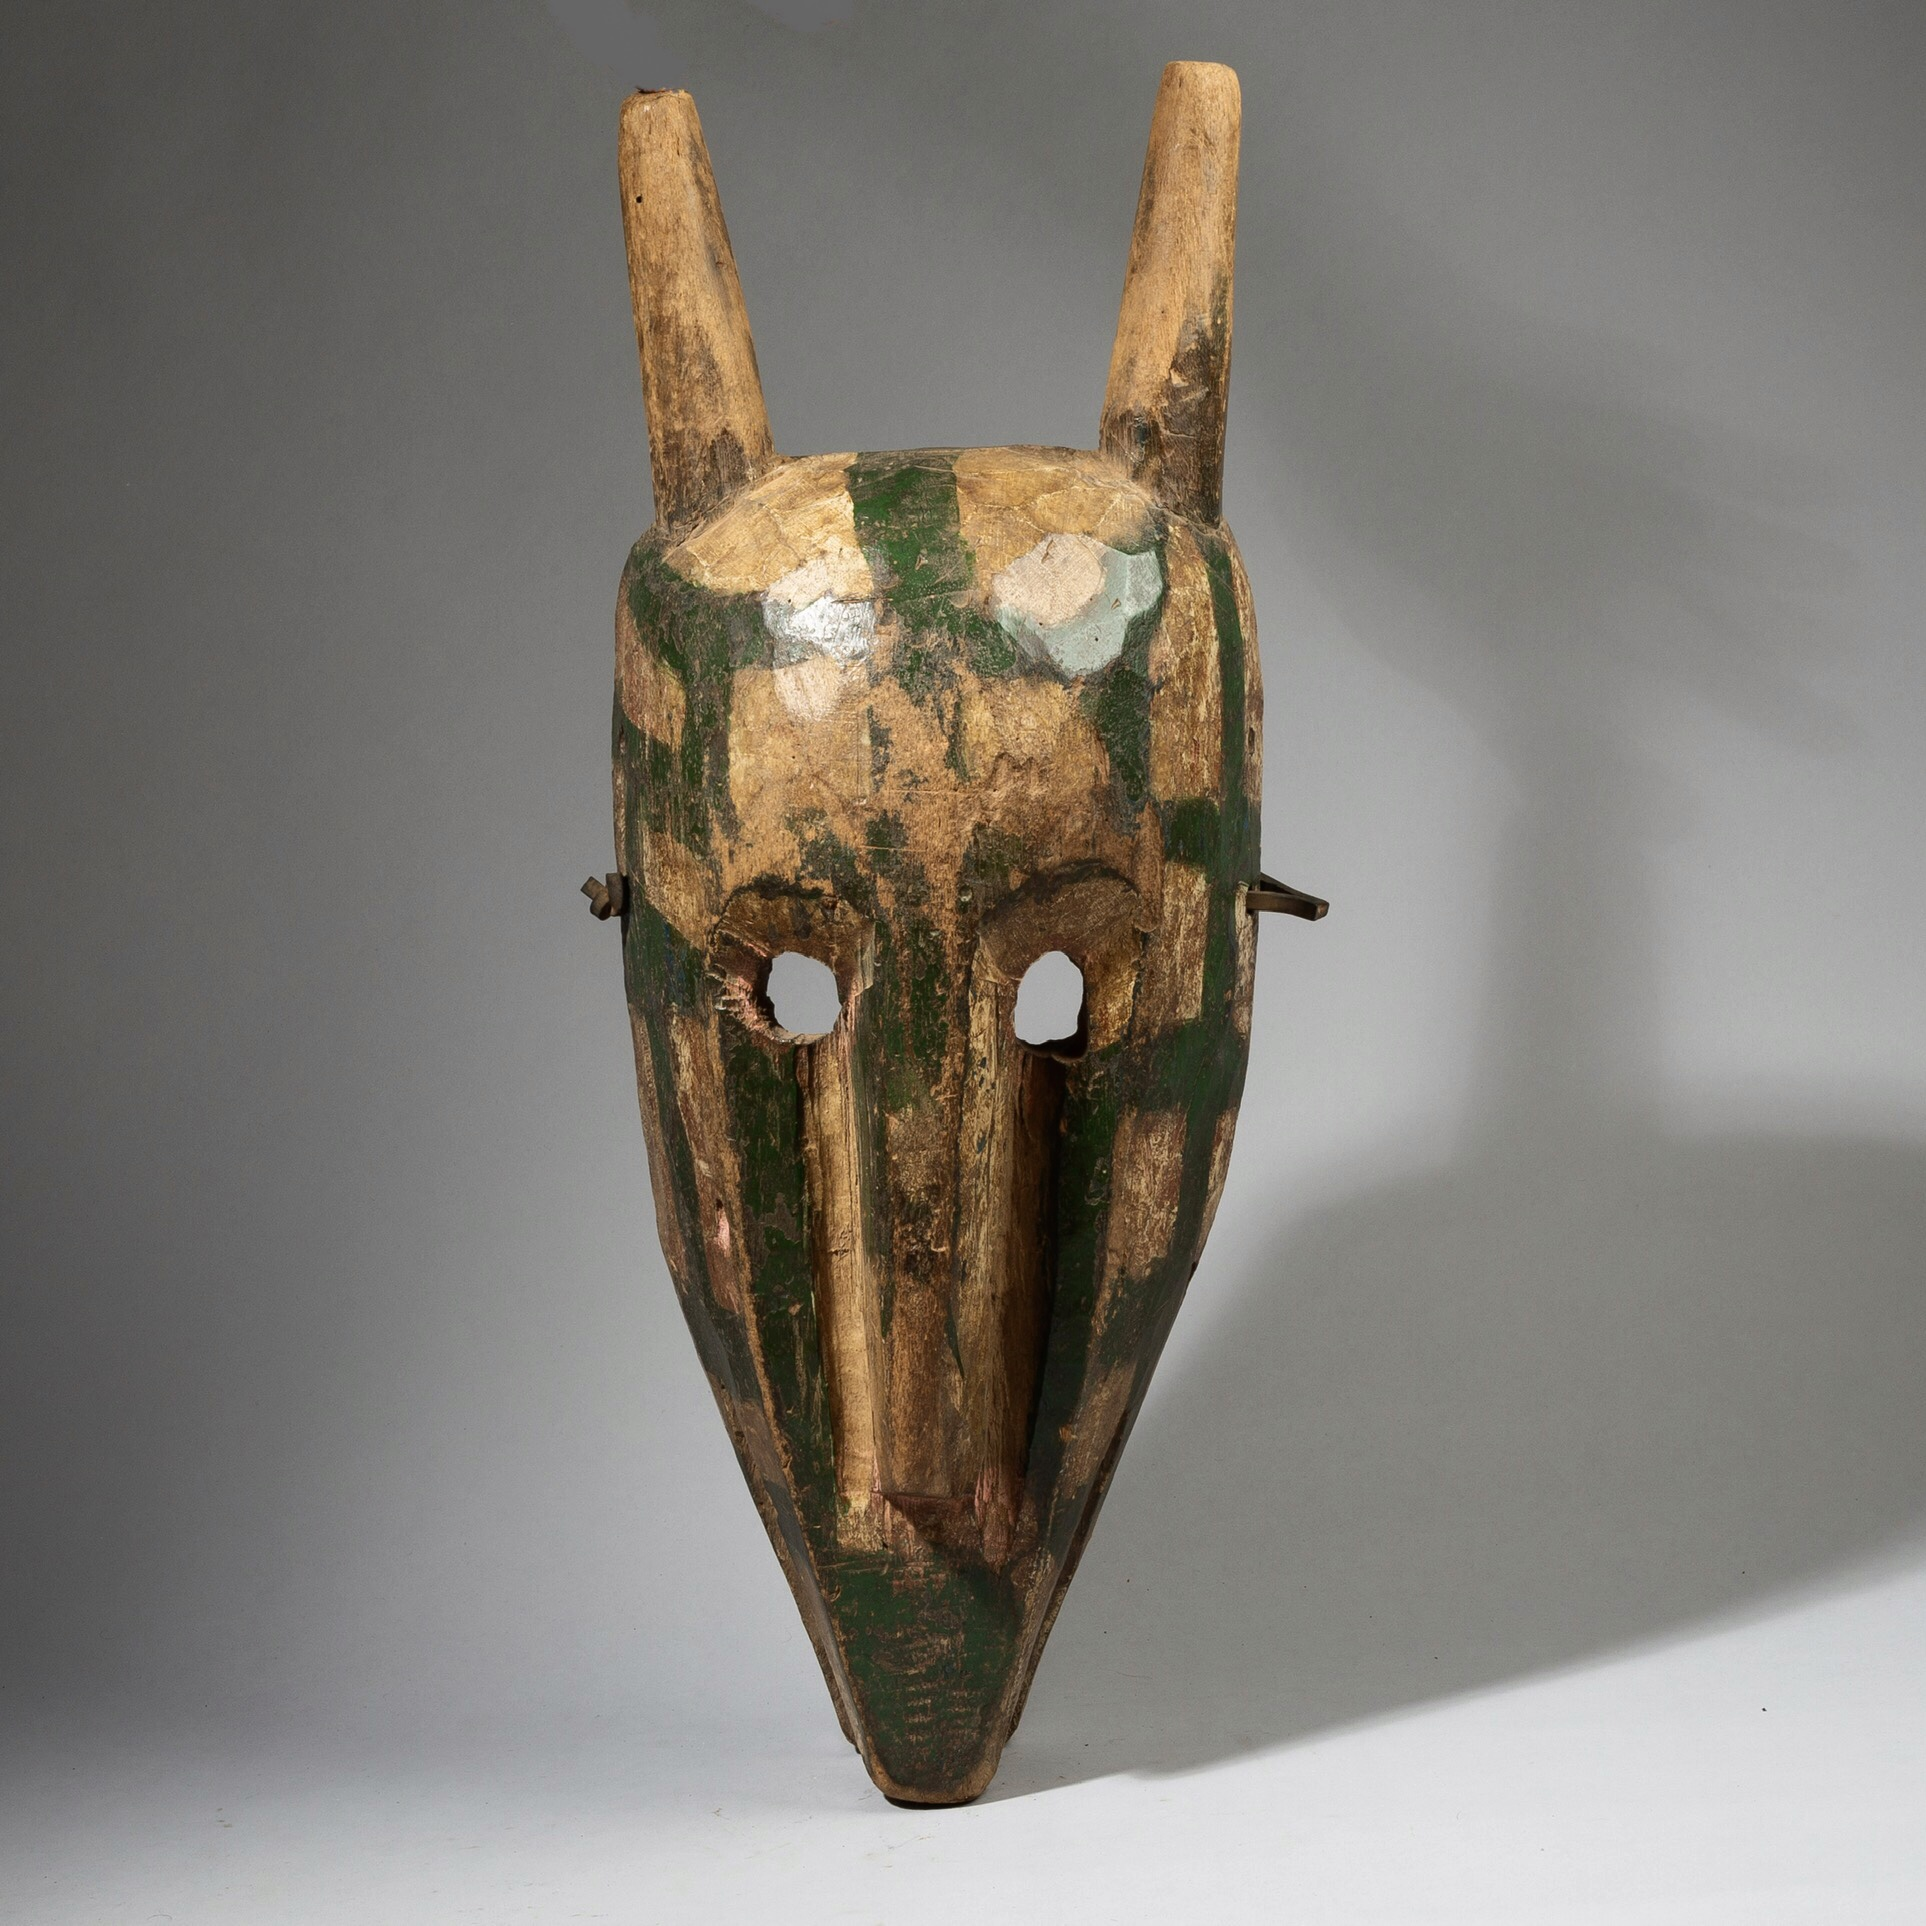 SOLD A MASSIVE BOBO MASK FROM MALI, WEST AFRICA ( No 4446)